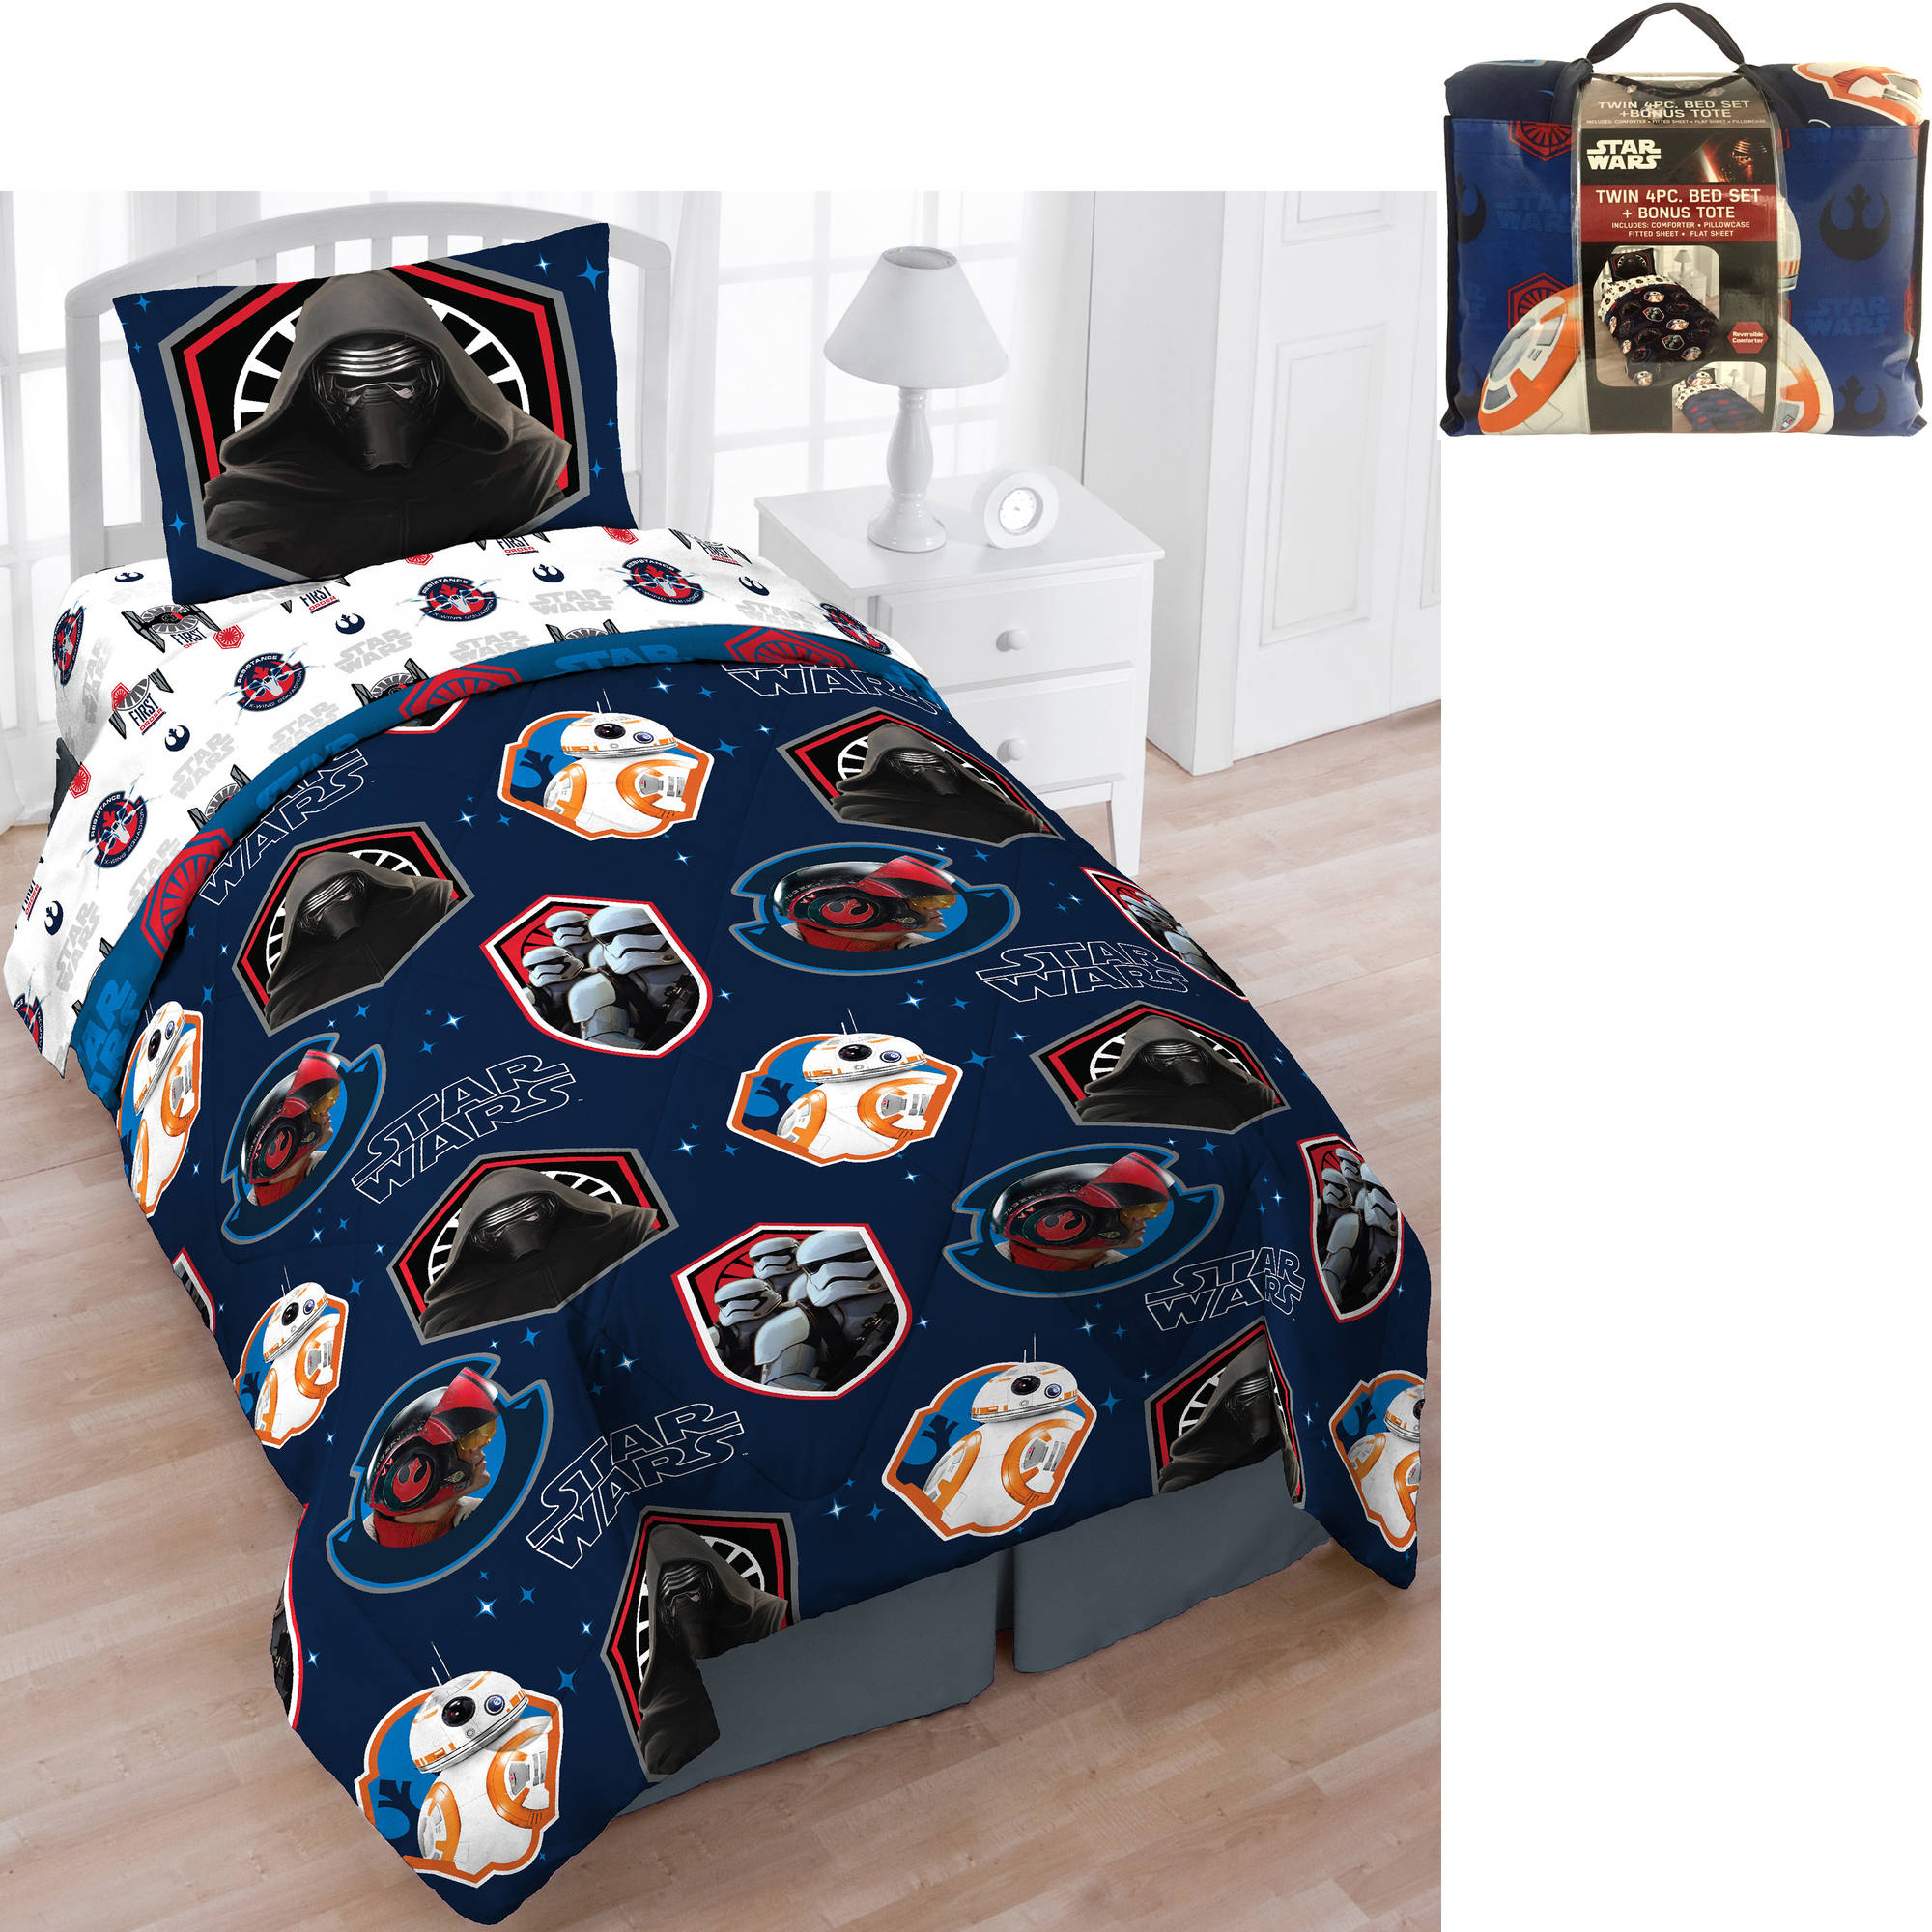 spidermang canada target xl sale for sets bedding bed twin bedspread queen set bedroom marvelous frozen comforter